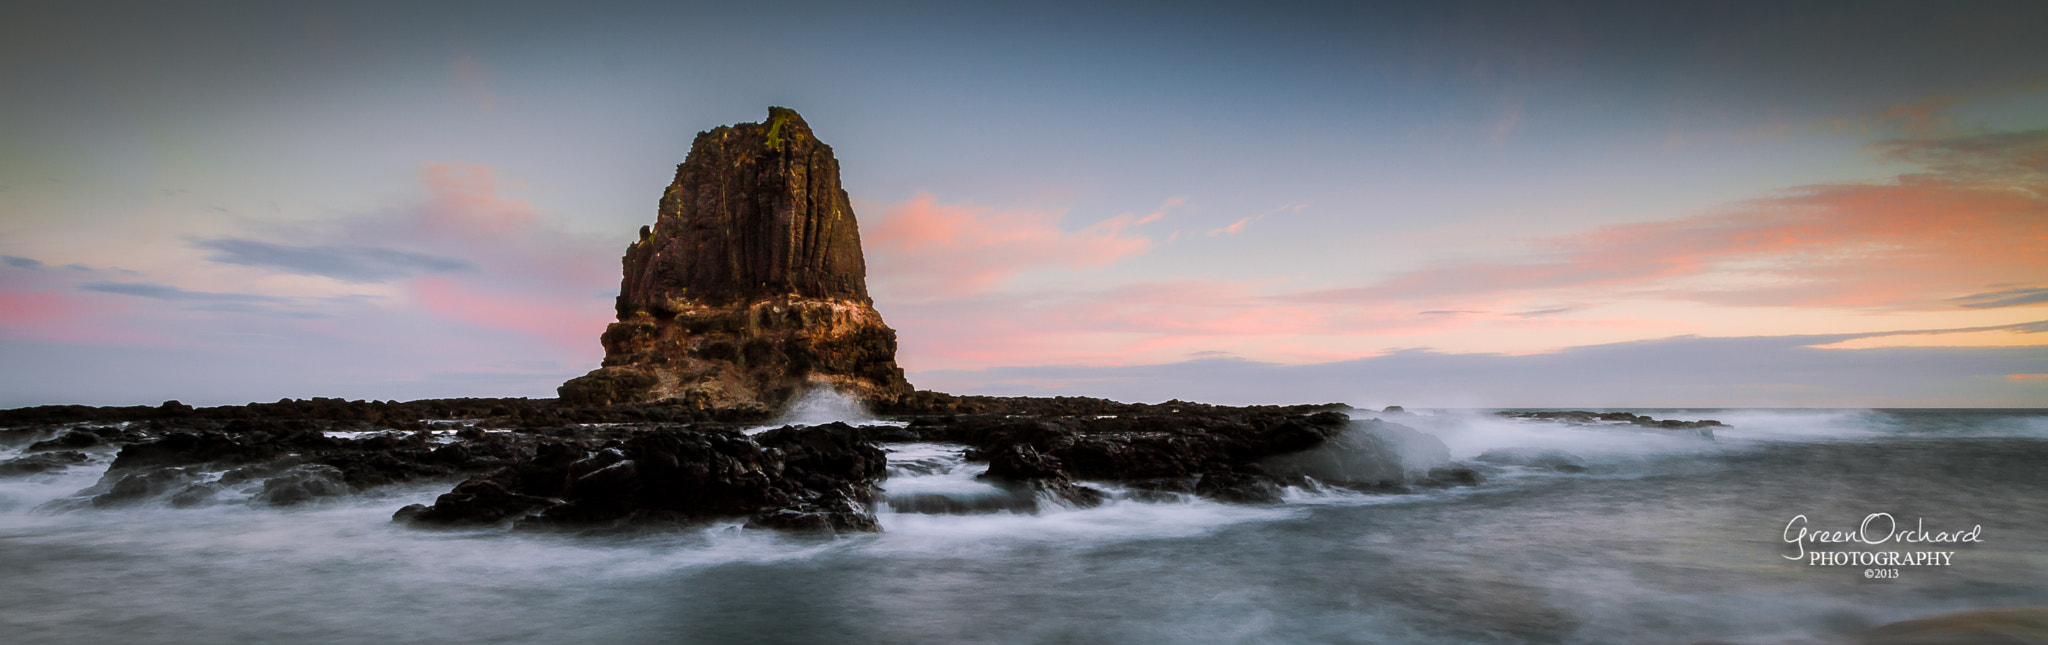 Photograph Rock Age by Green Orchard Photography on 500px